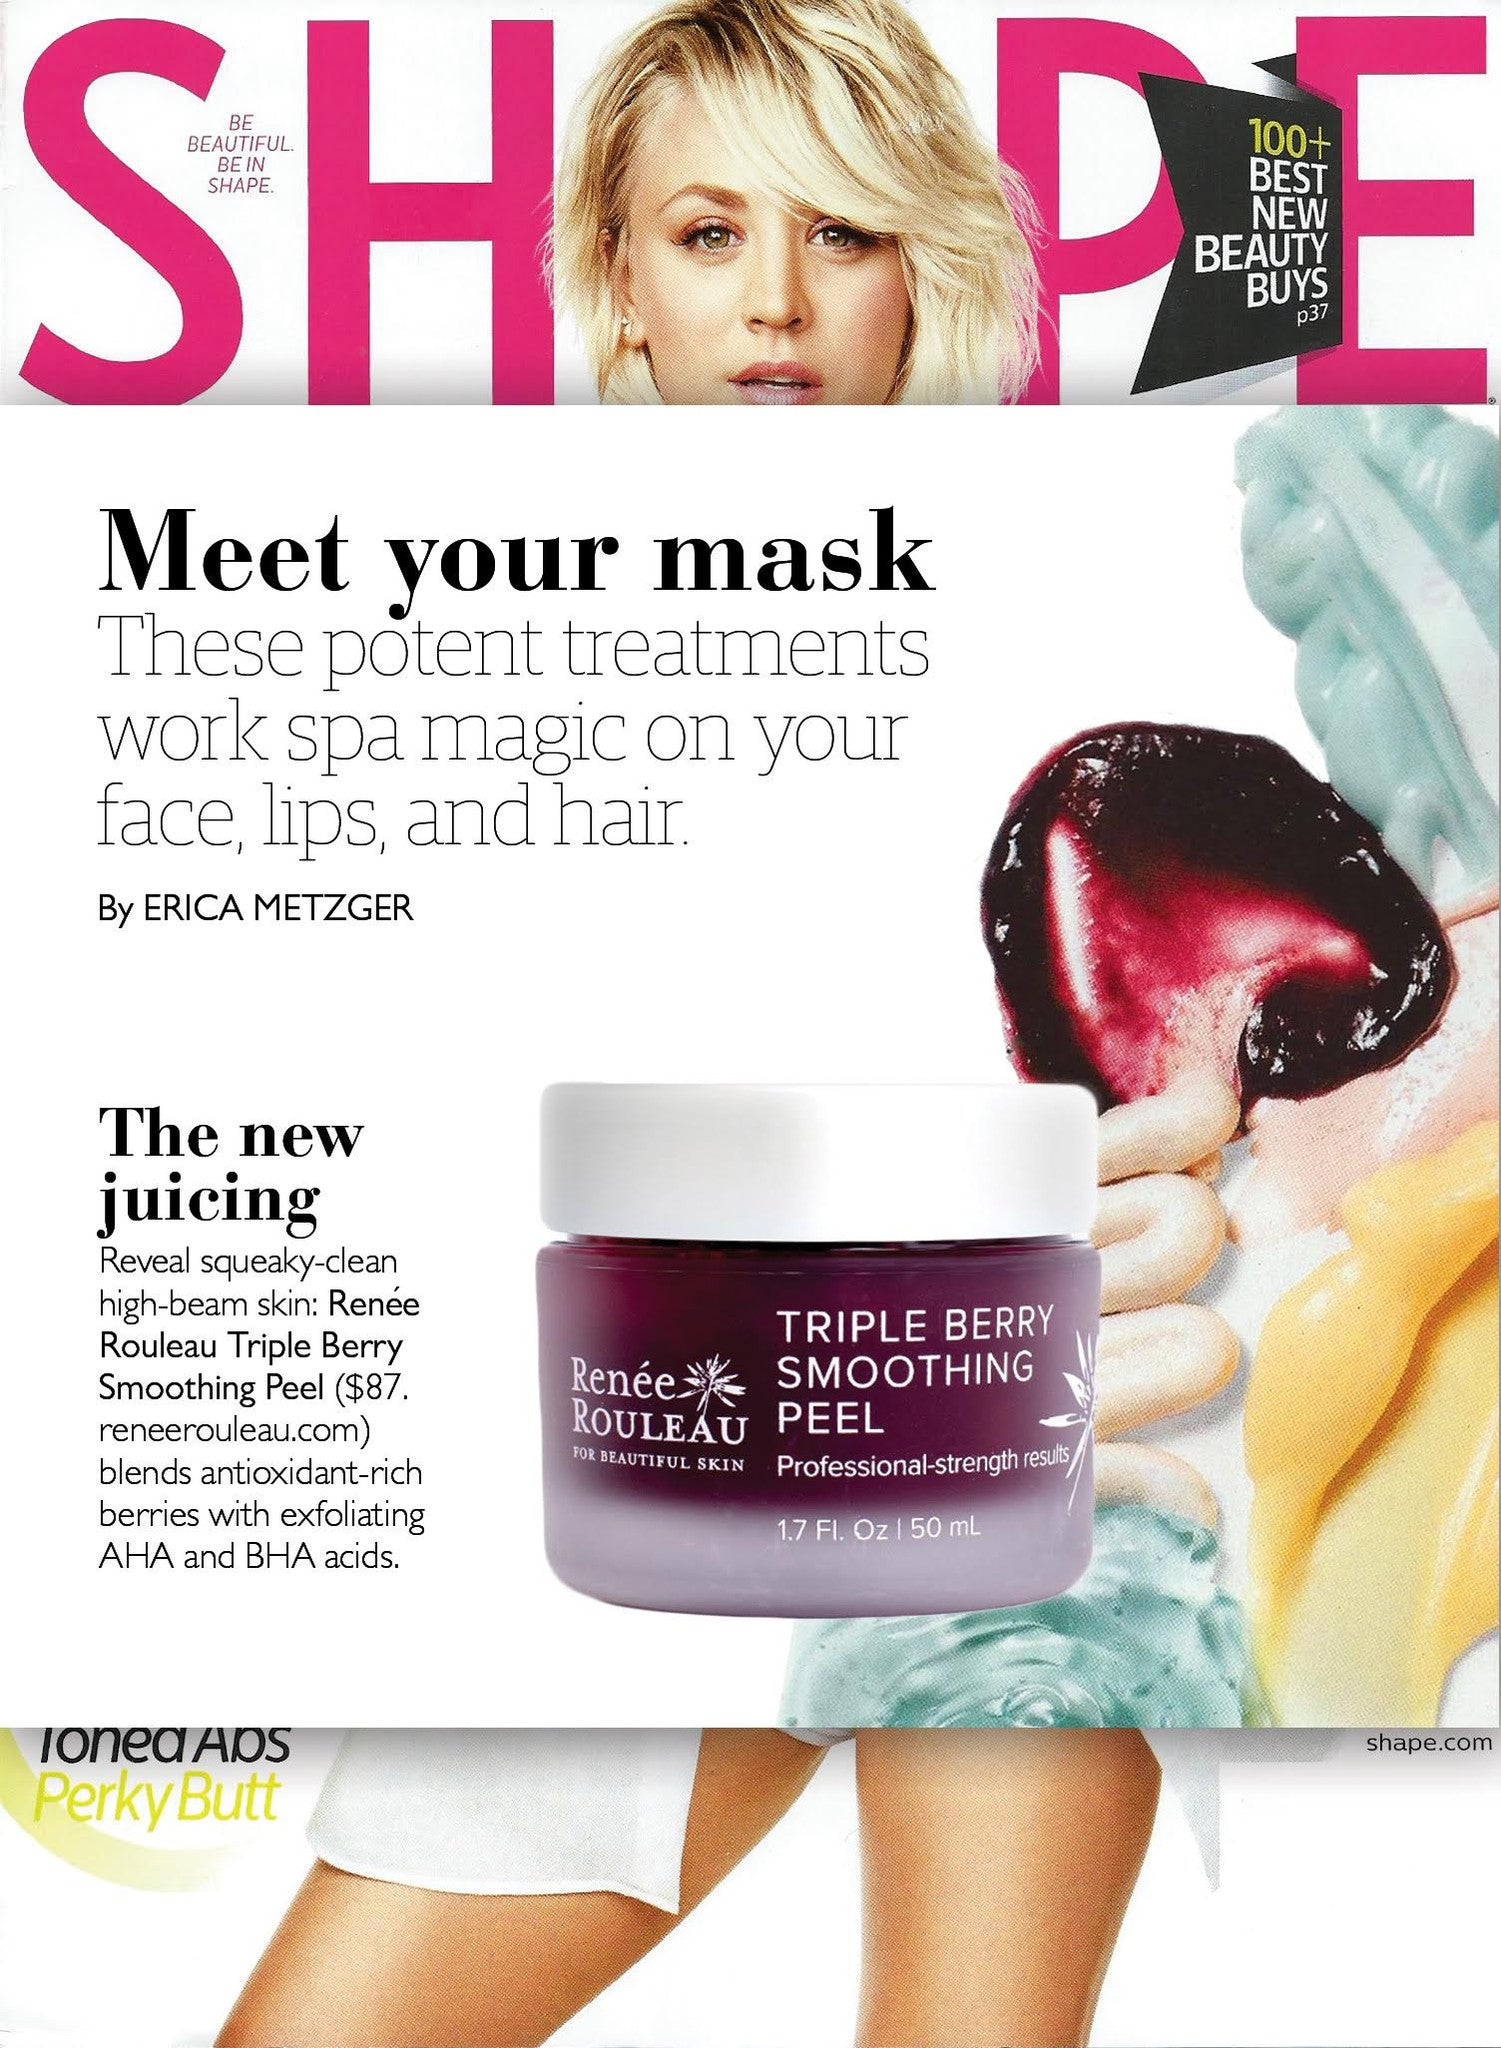 Shape Magazine Review of Triple Berry Smoothing Peel